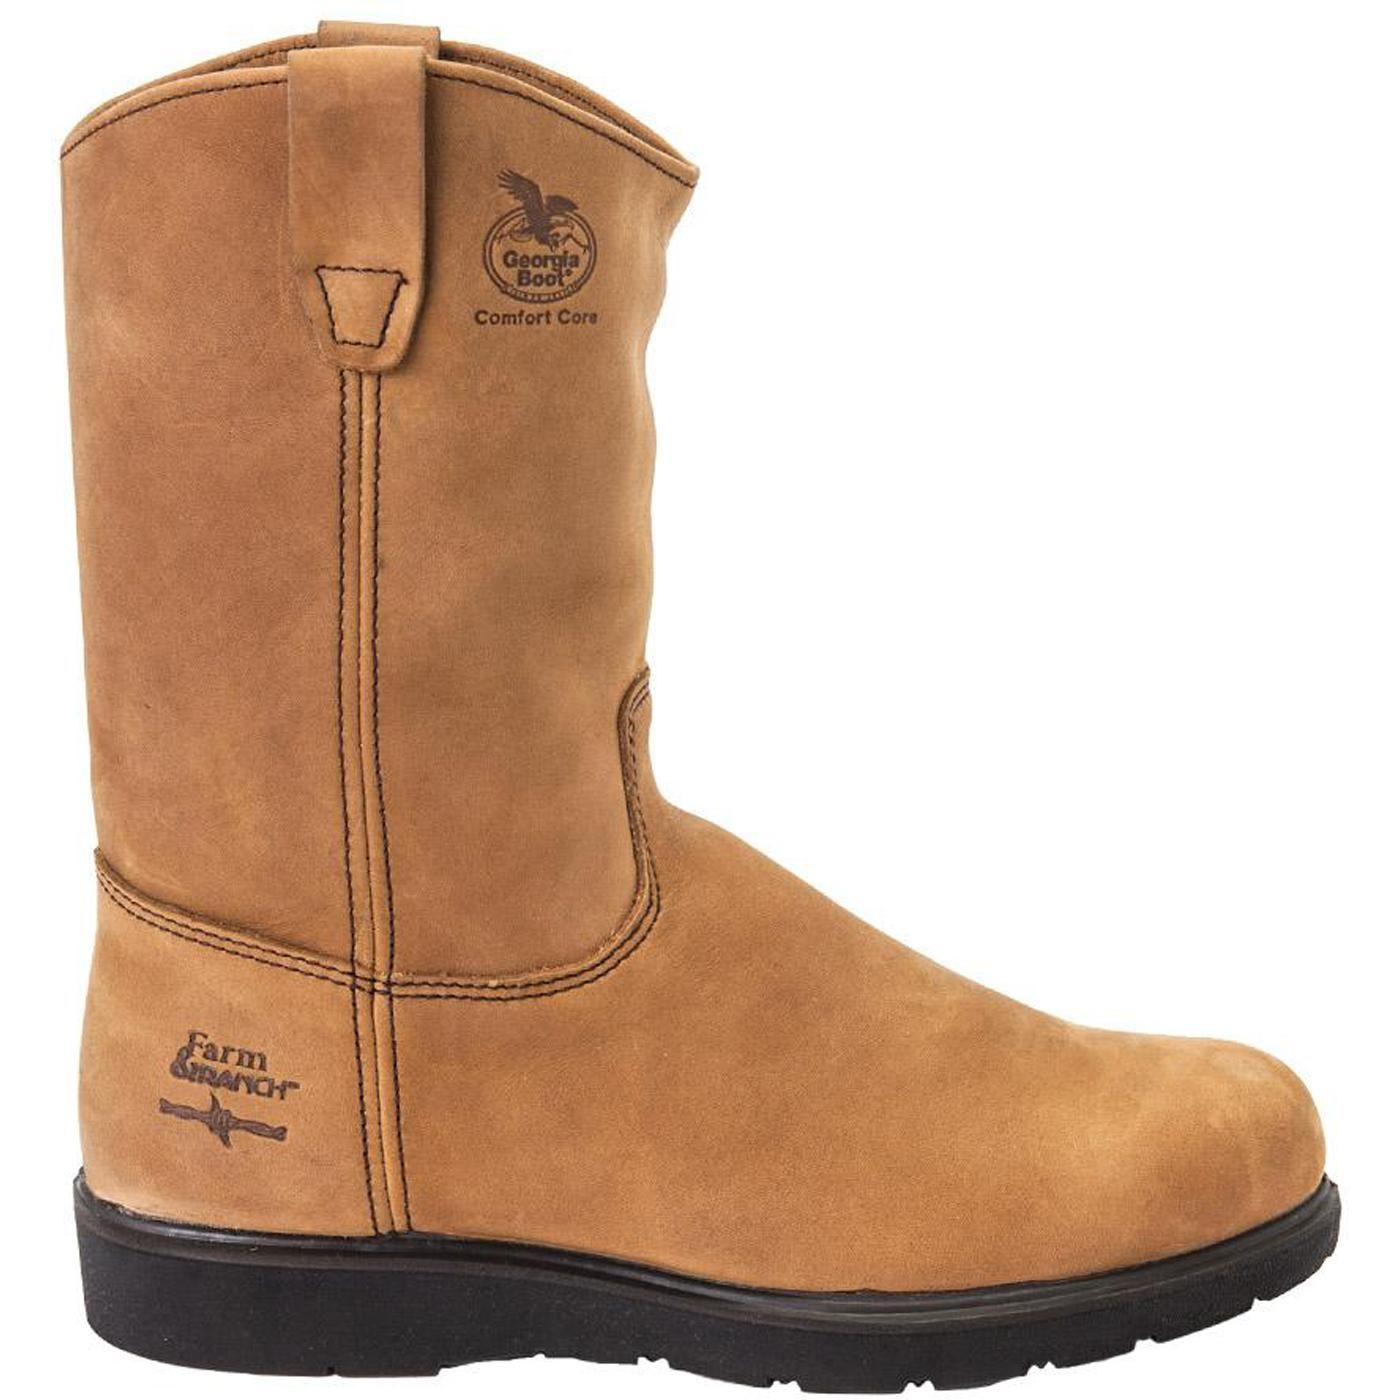 Creative Entire Site On Sale Exclusions Lucchese, Miss Me Jeans, Old Gringo, Minnetonka, Frye, Under Armour, Yeti, Oak Tree Farms, Bed Stu, Select Belts, Resistol Ridesafe Hat, And Equestrian Boots And Apparel Your Browsers Javascript